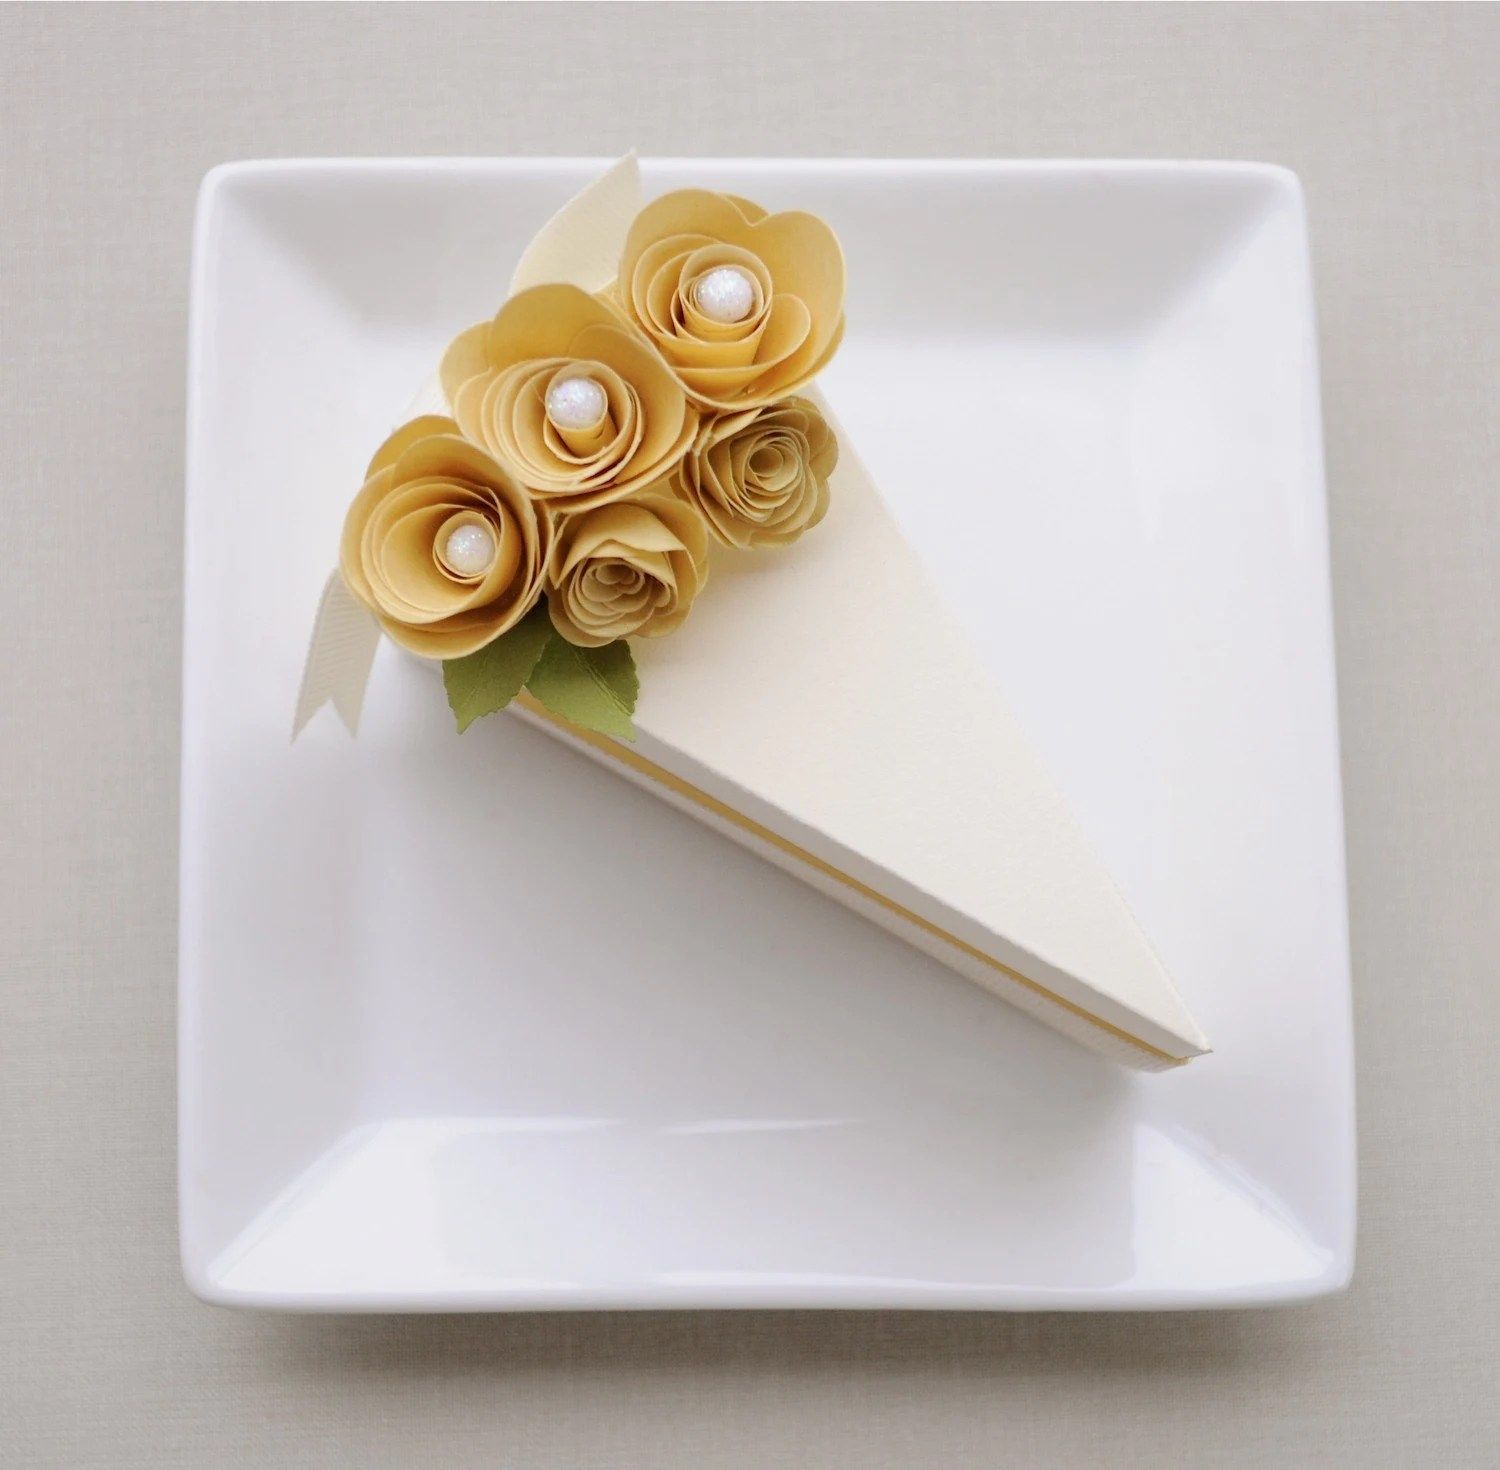 Creamy cake slice favor box with gold flowers (1) - wedding, bridal shower, baby shower, birthday - imeondesign